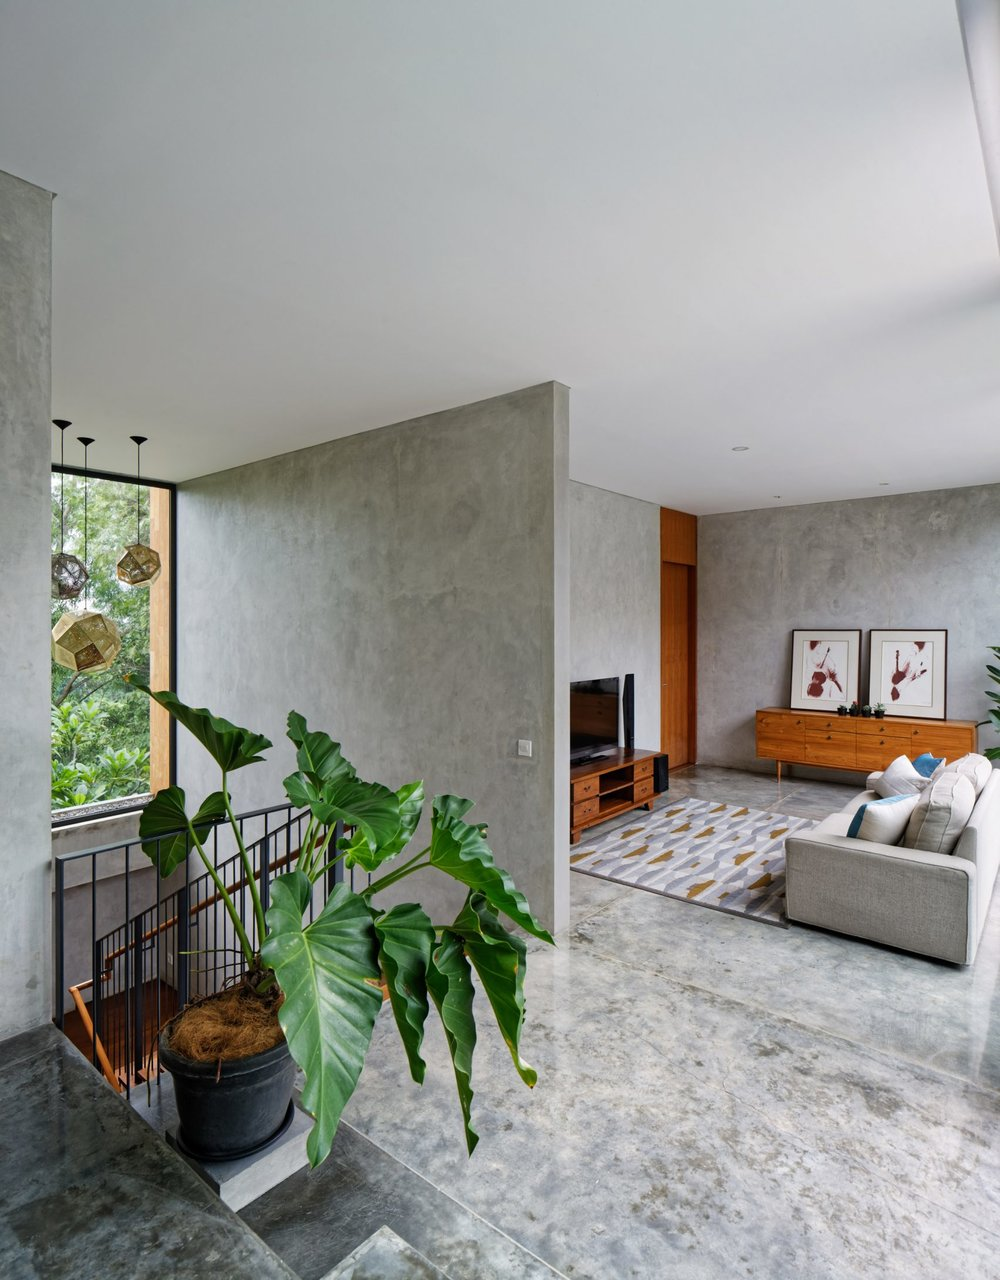 house-inside-outside-tamara-wibowo-architecture-residential-indonesia_dezeen_2364_col_20-1704x2181.jpg